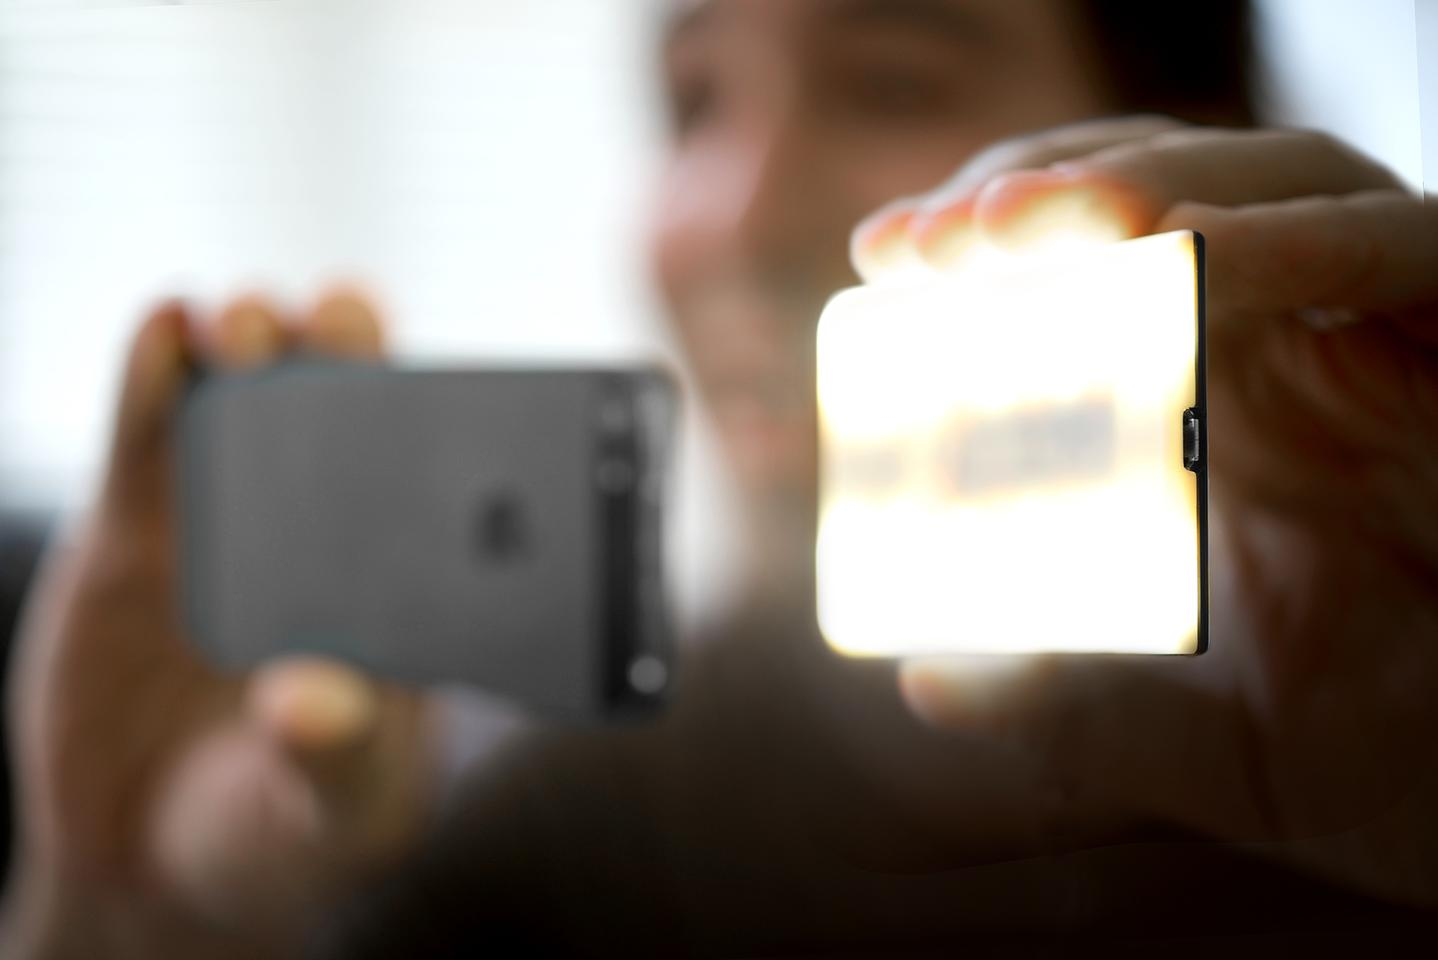 Nova provides more lighting options than the iPhone's built-in flash